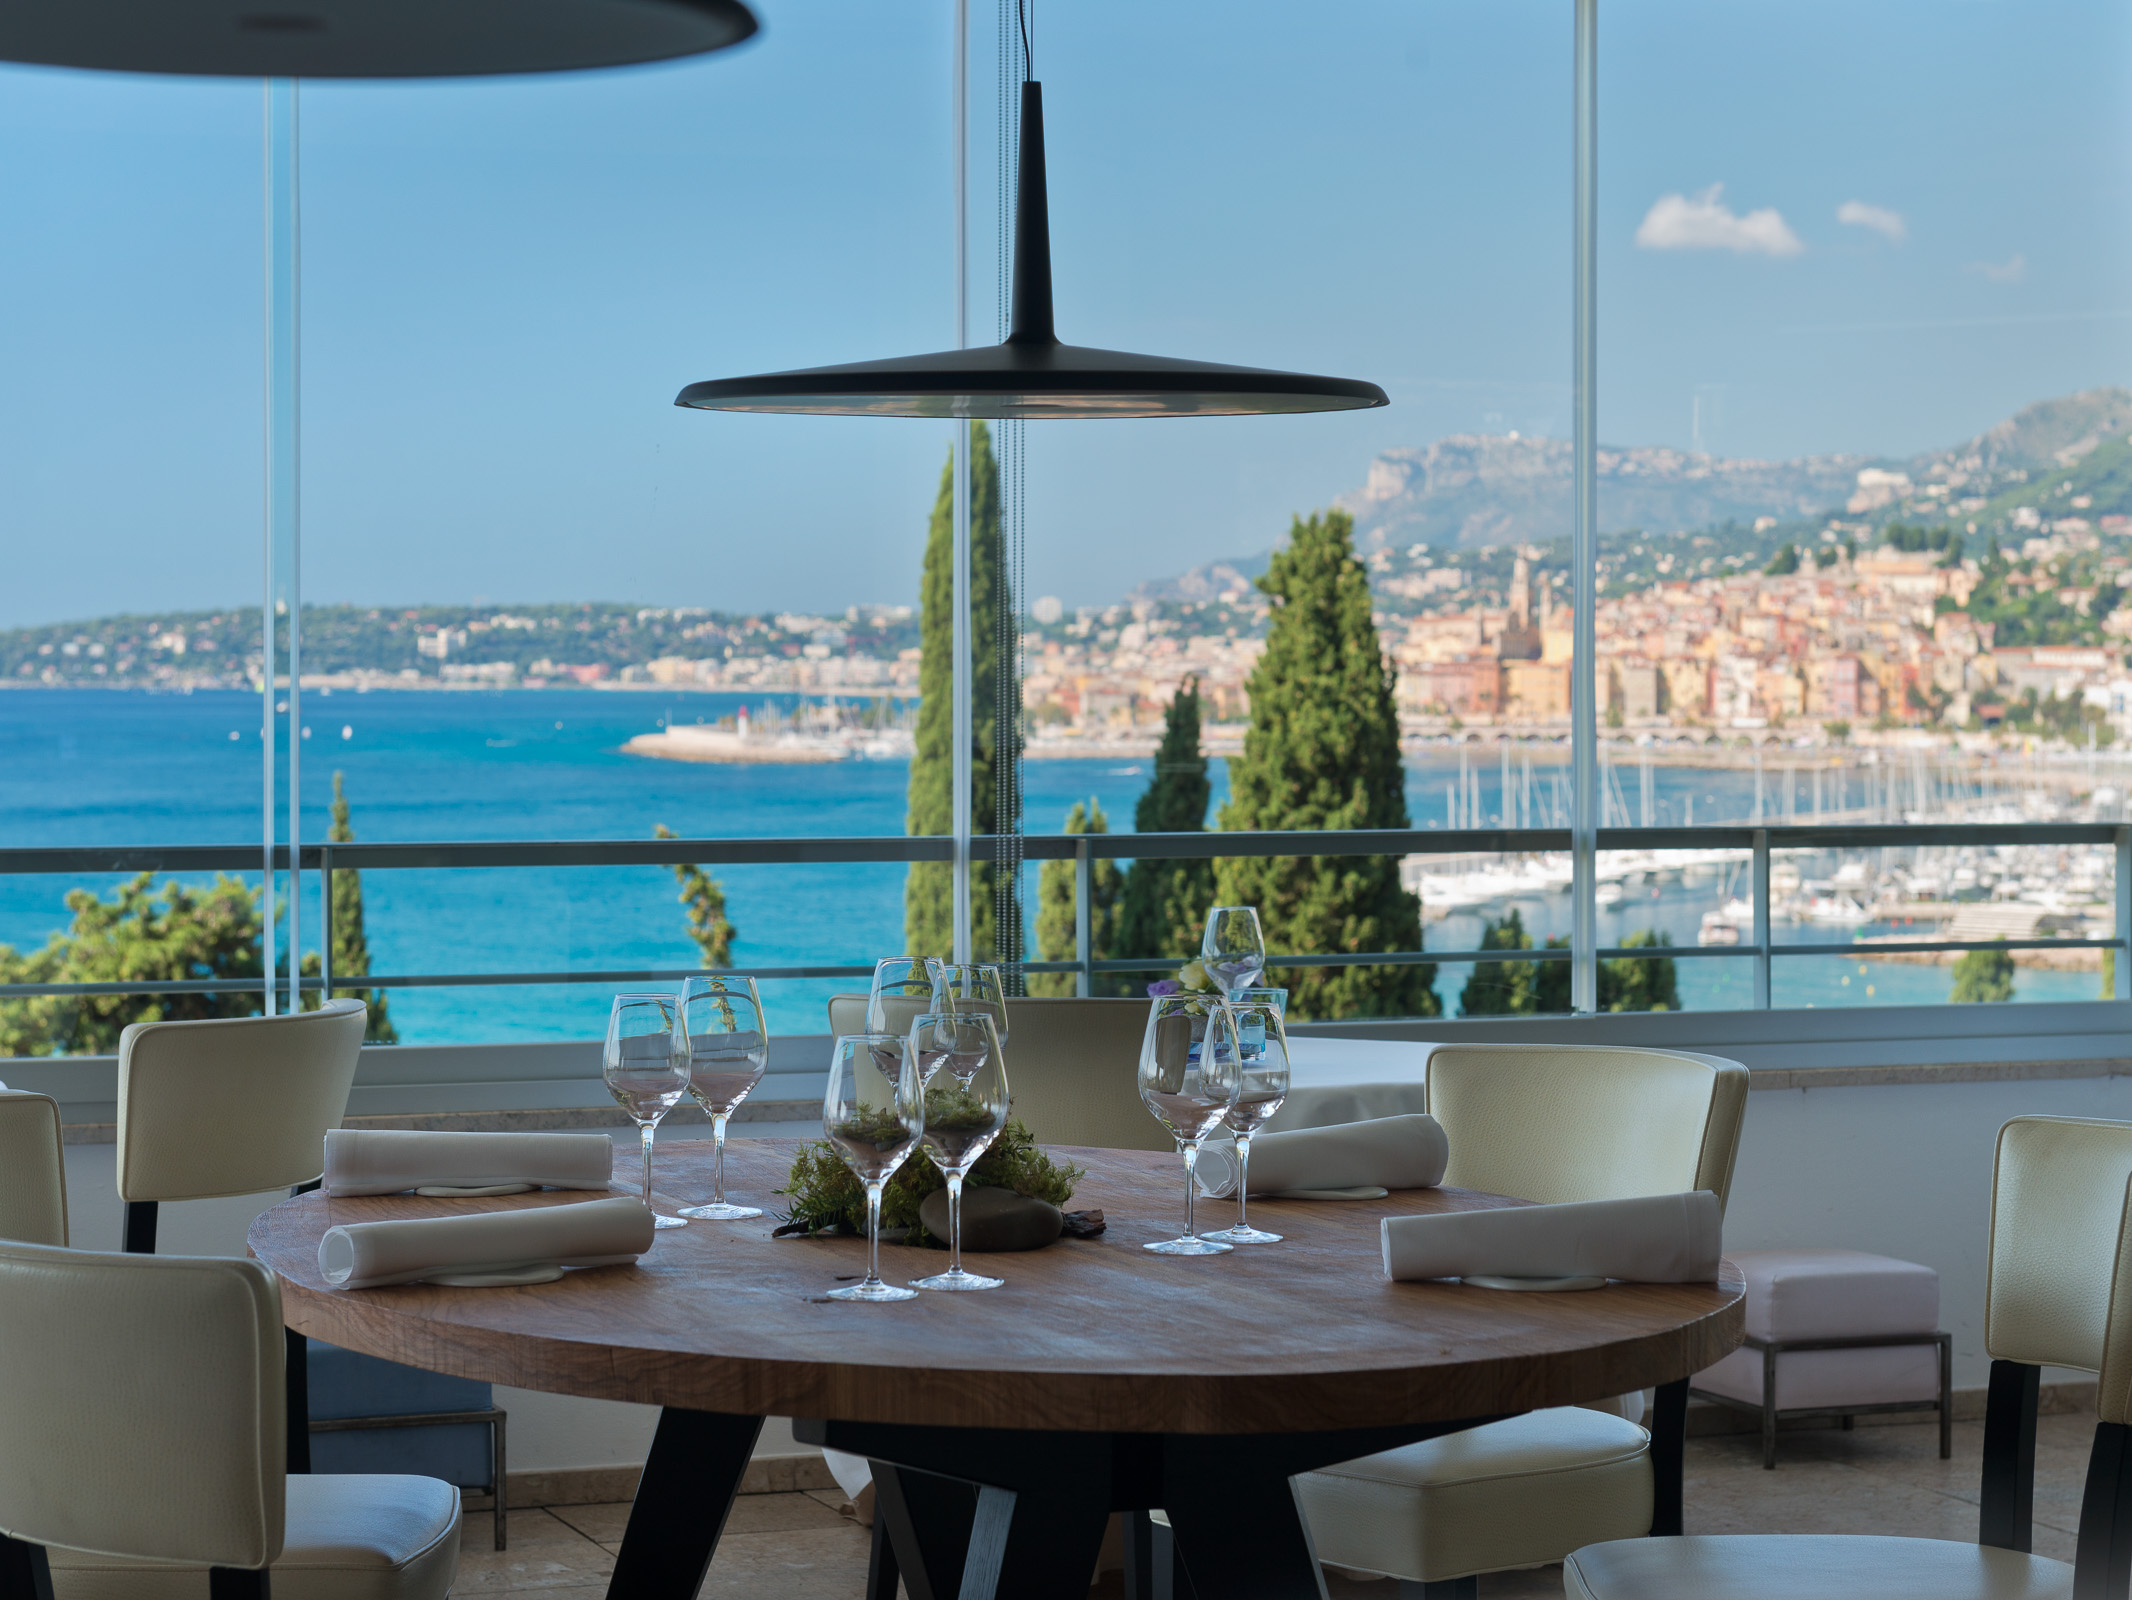 Restaurant Mirazur in Menton south of France